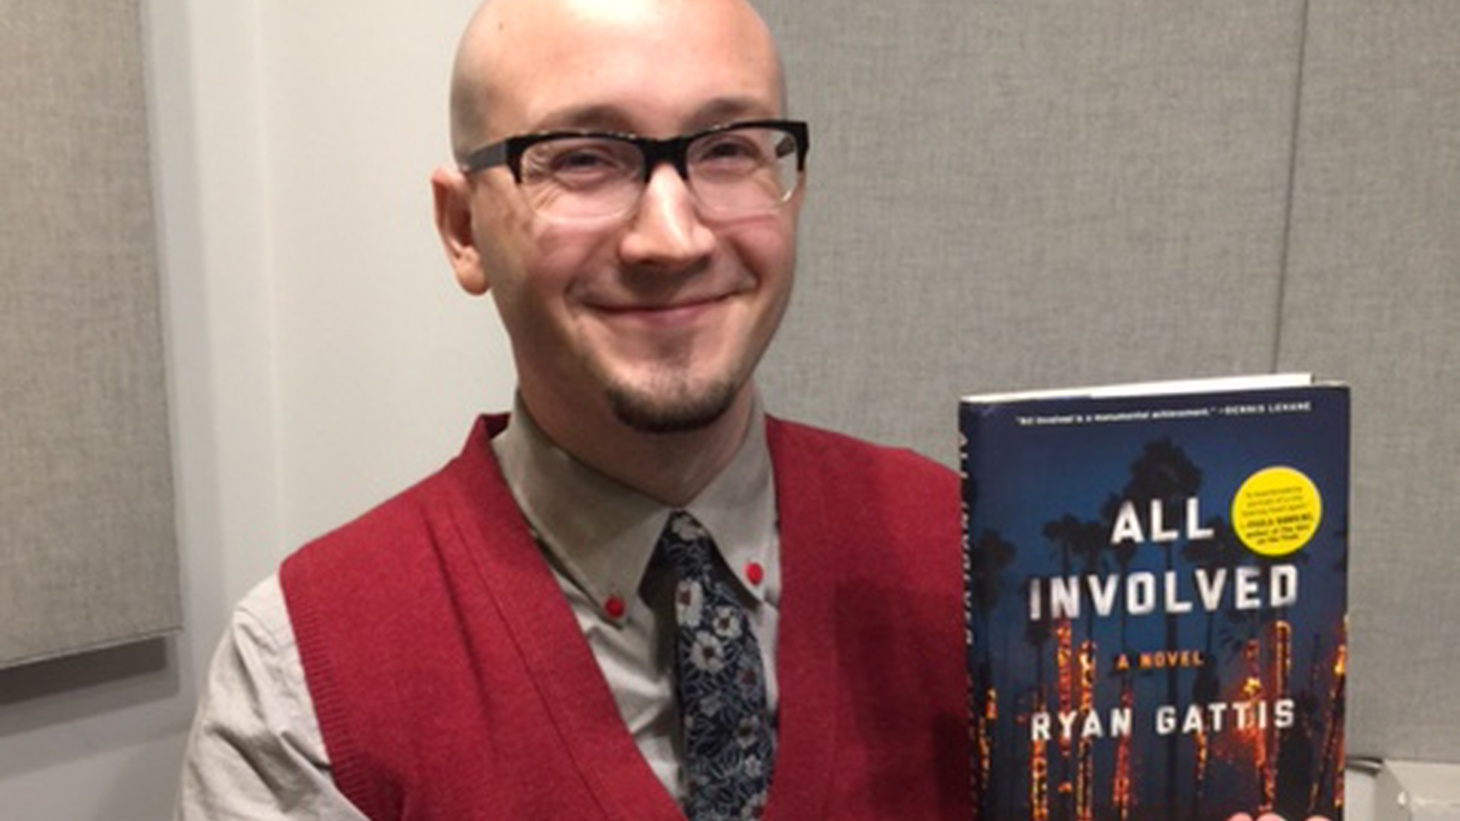 Ryan Gattis' new book, All Involved, is really a reconstitution of the L.A. riots from a person who wasn't there.